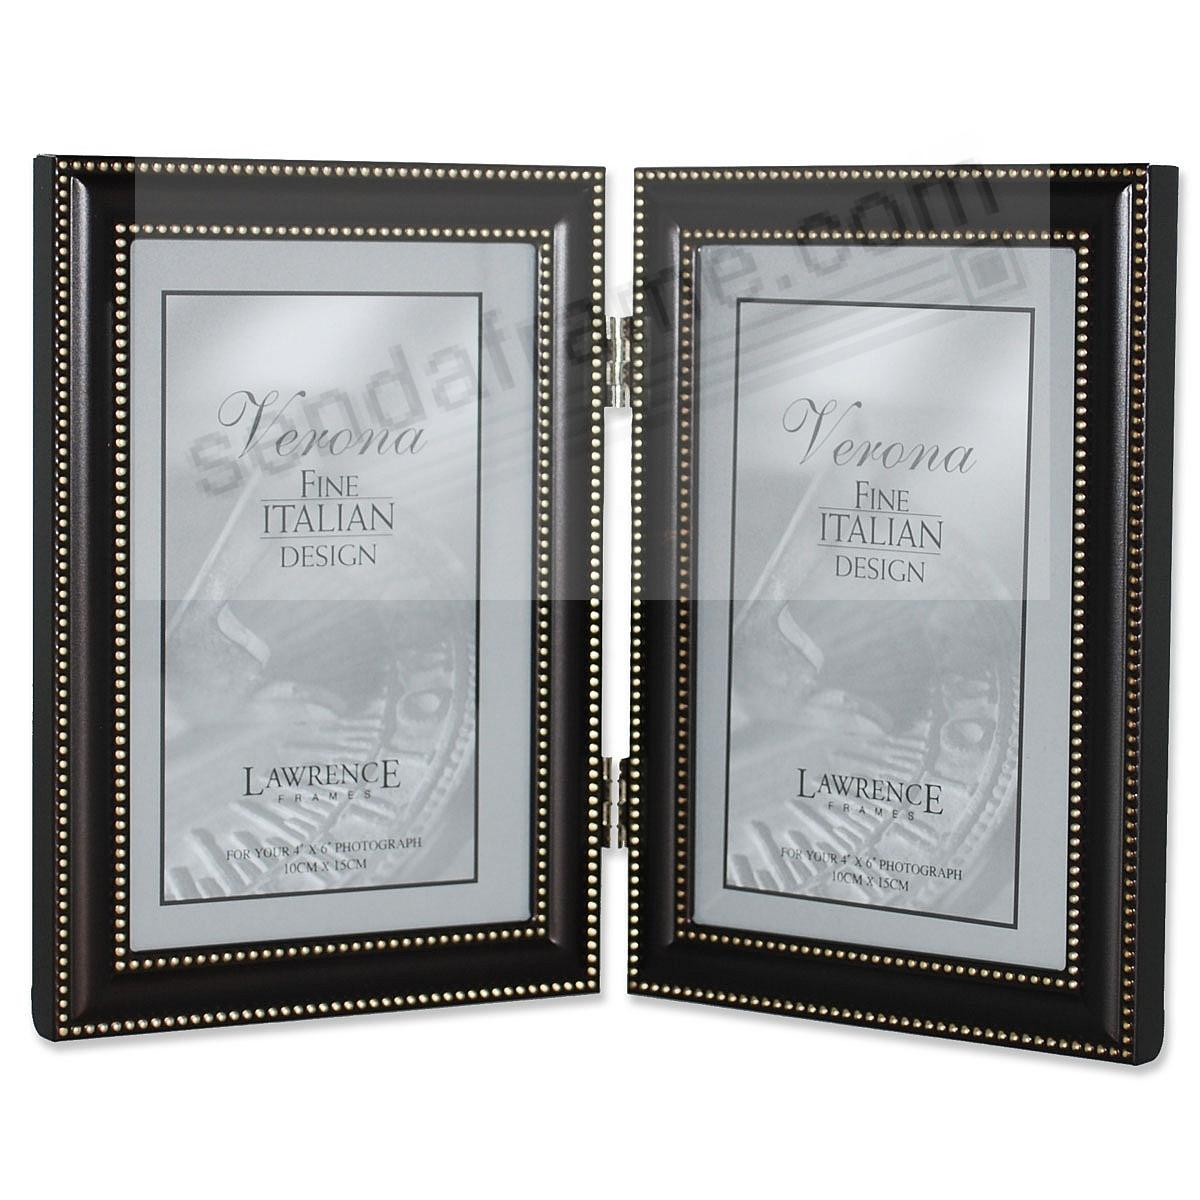 hardtofind hinged double 4x6 frame in oil rubbed bronze with beading